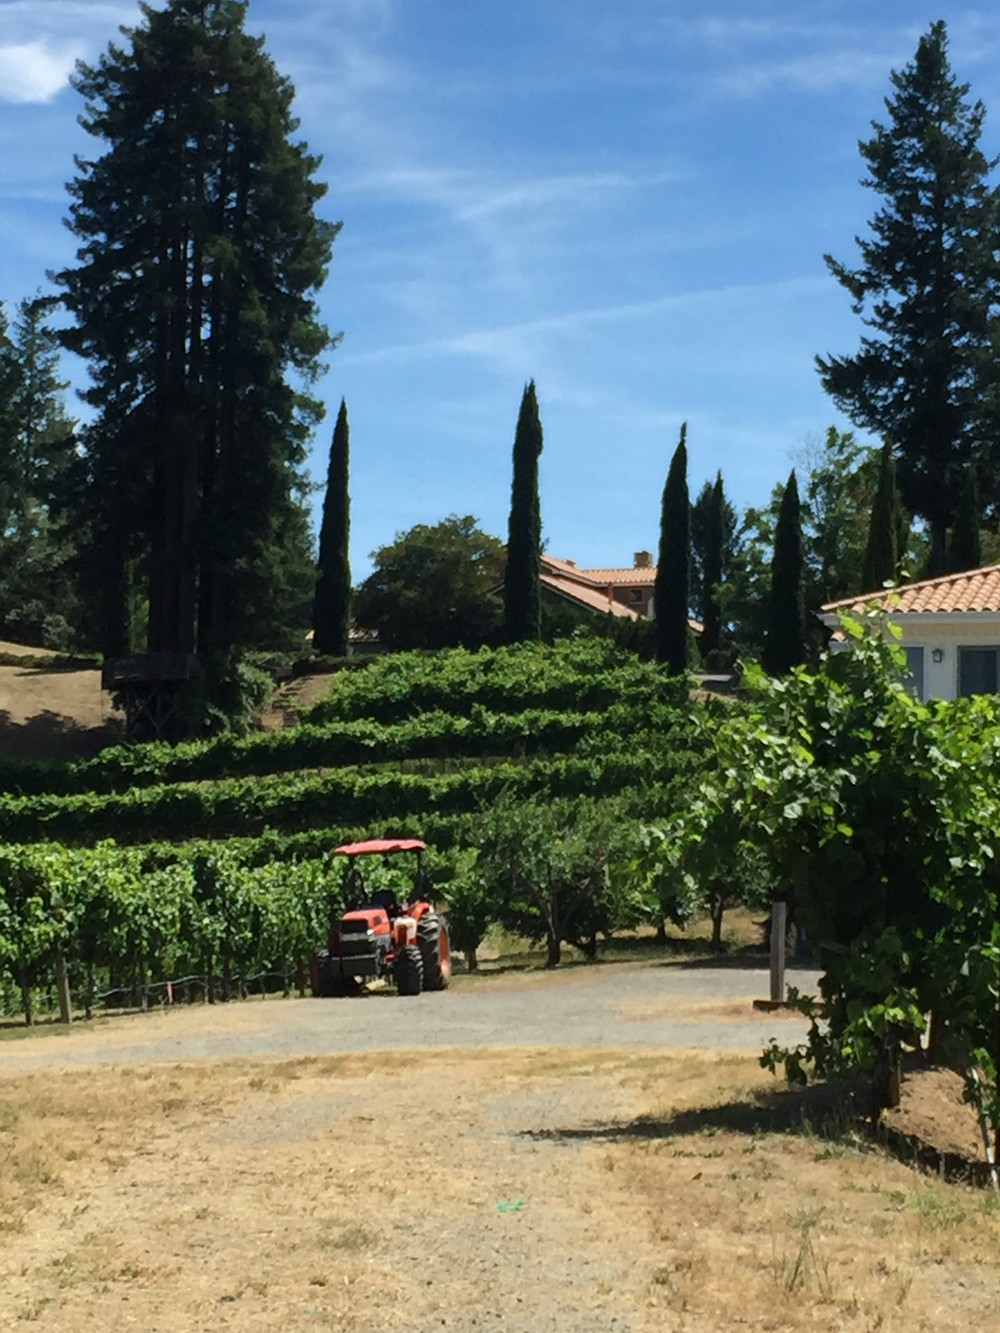 Vineyard with Tractor.jpg